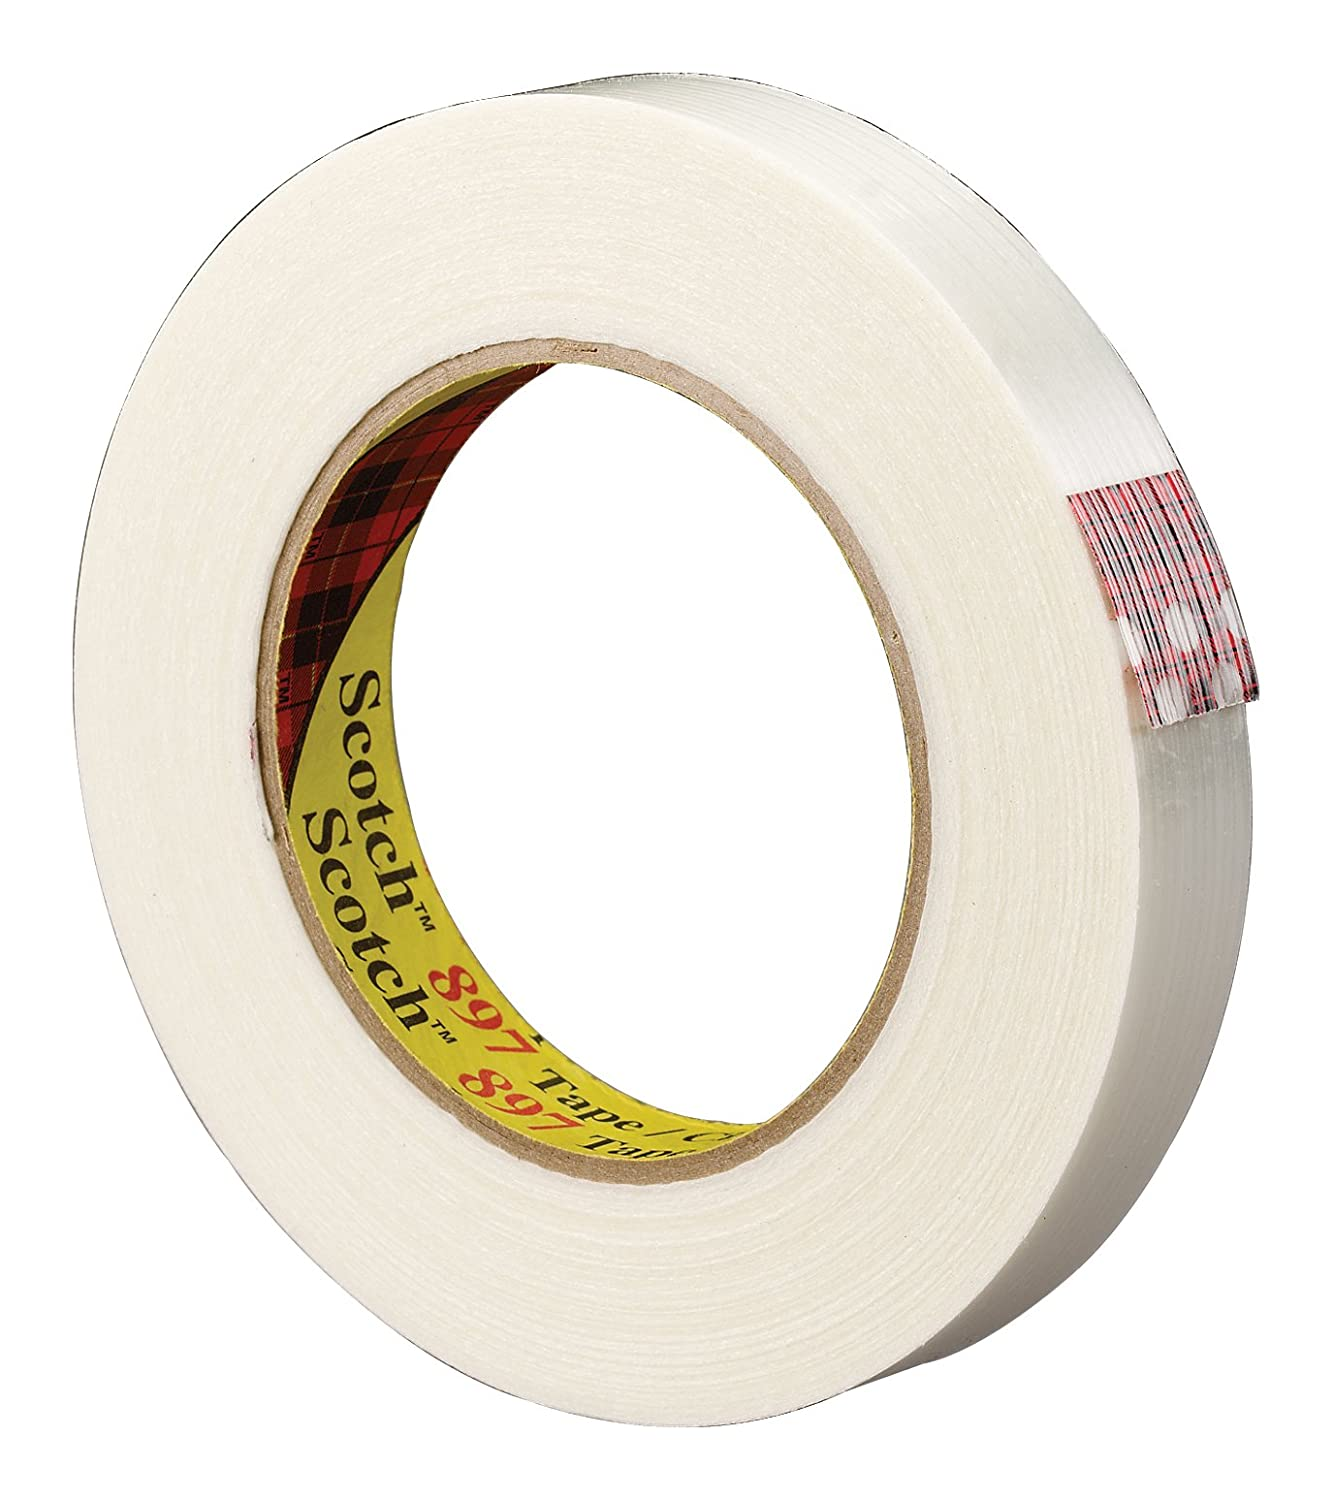 Scotch Filament Tape 897 Clear: Industrial Filament Tape: Amazon.com: Industrial & Scientific